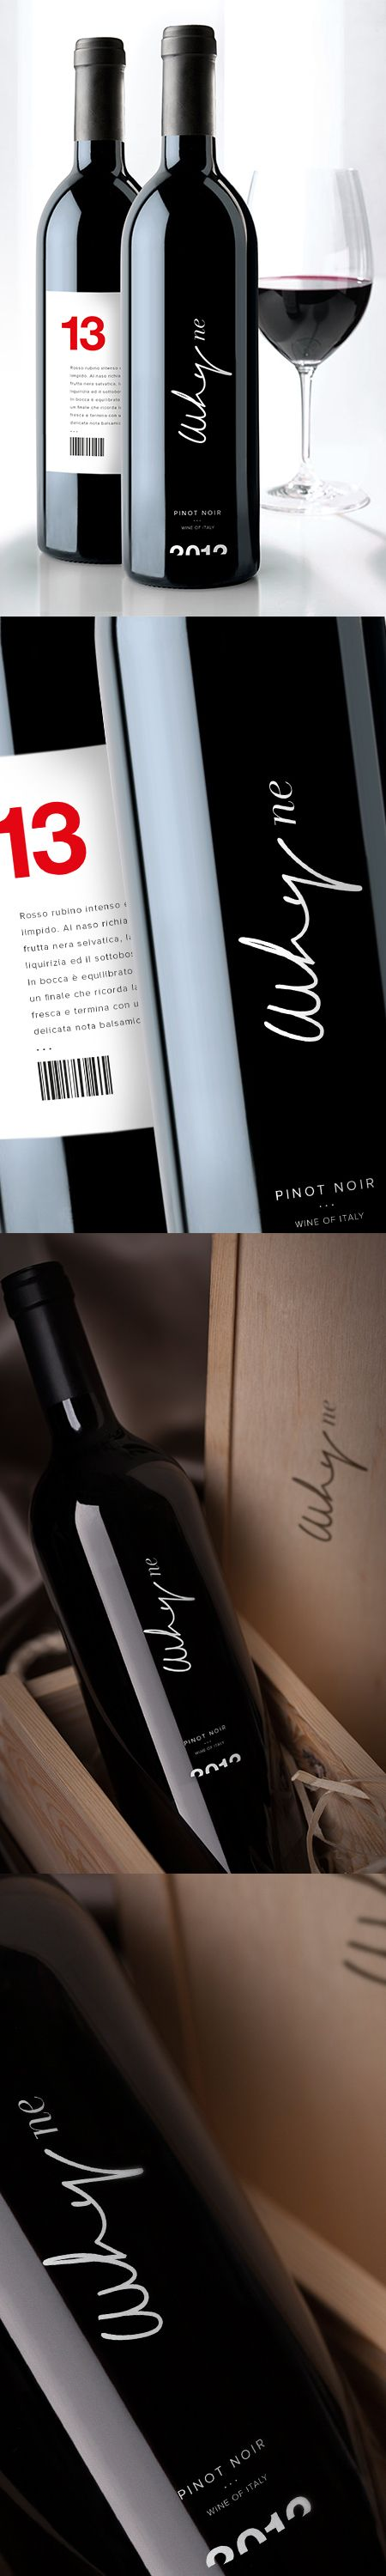 label / WHYNE \ wine pinot noir.